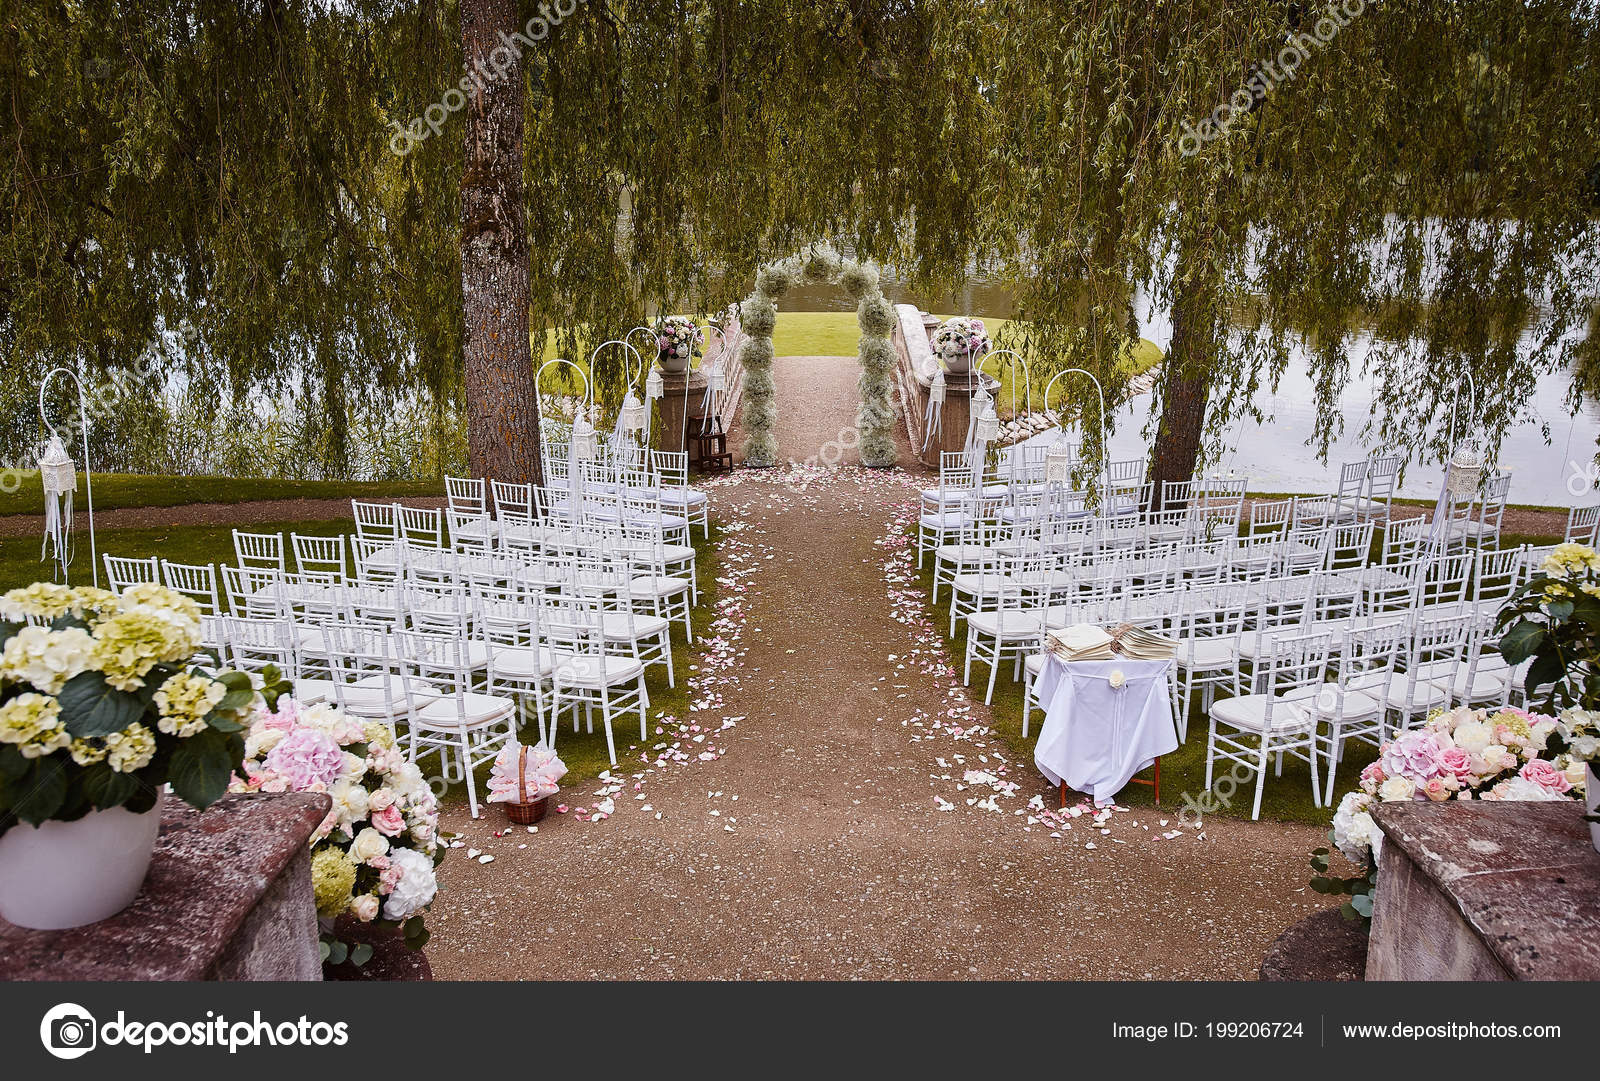 Place Wedding Ceremony Wedding Arch Decorated Flowers White Chairs ...